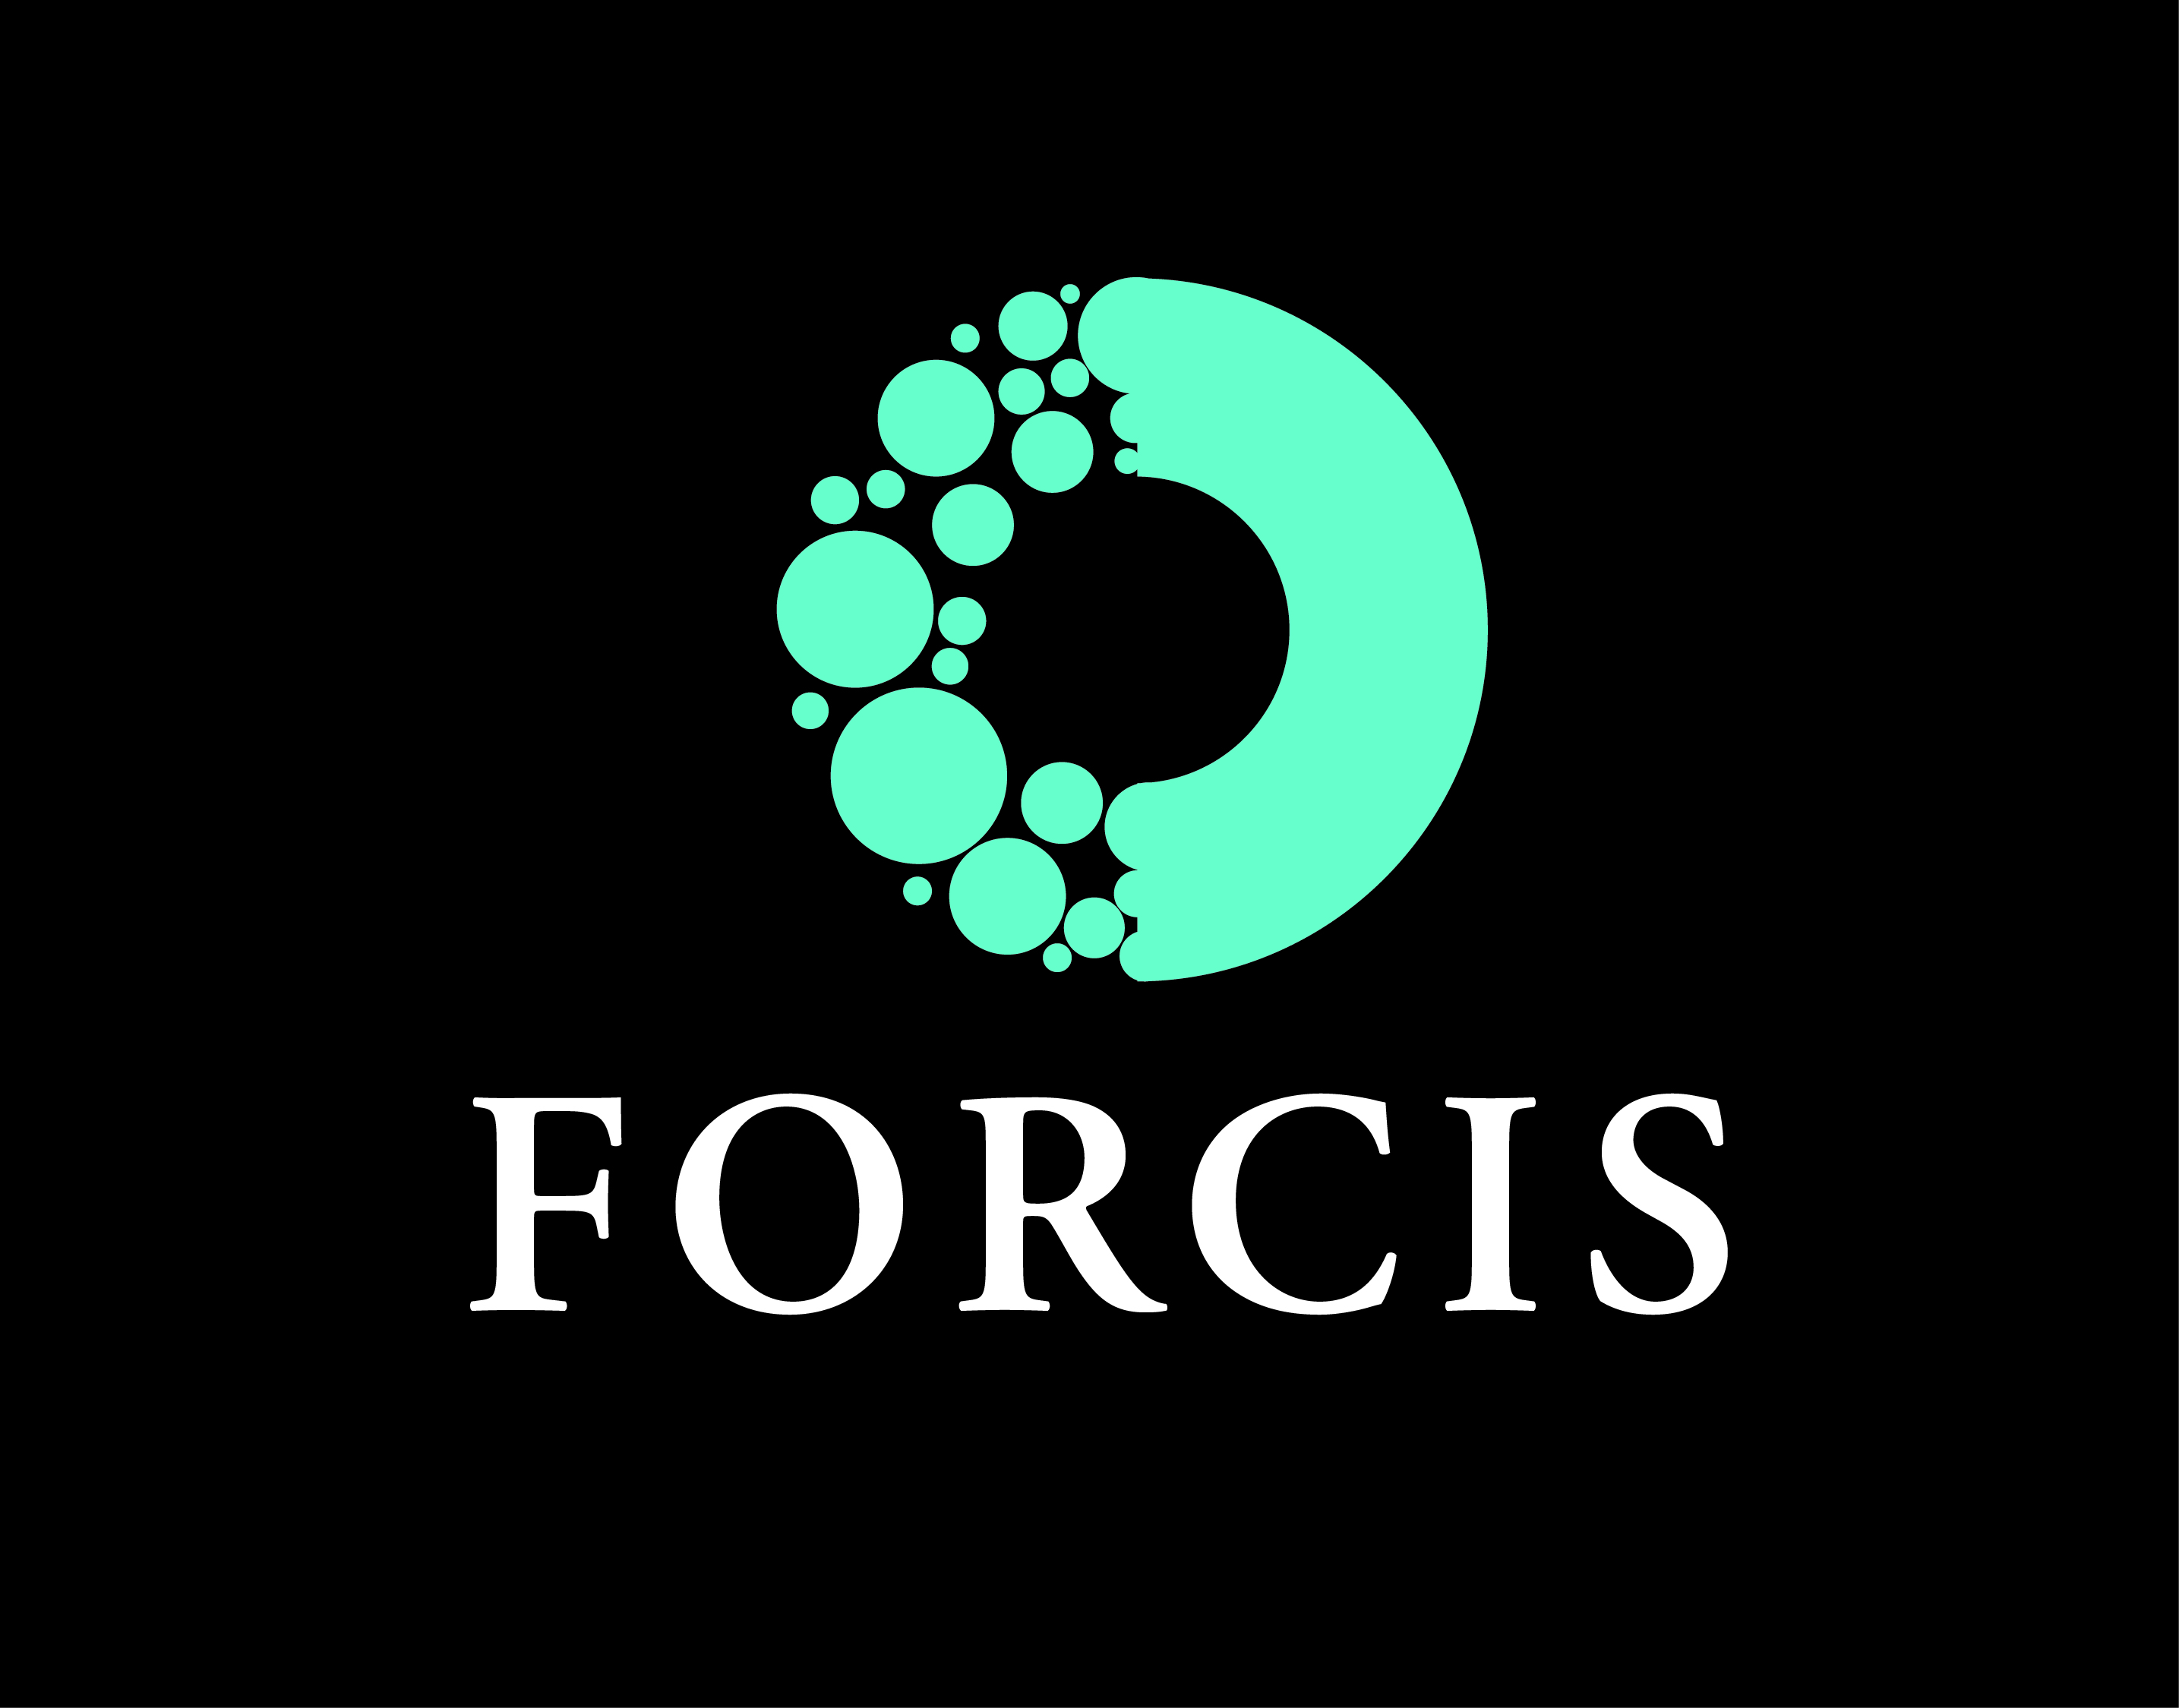 FORCIS